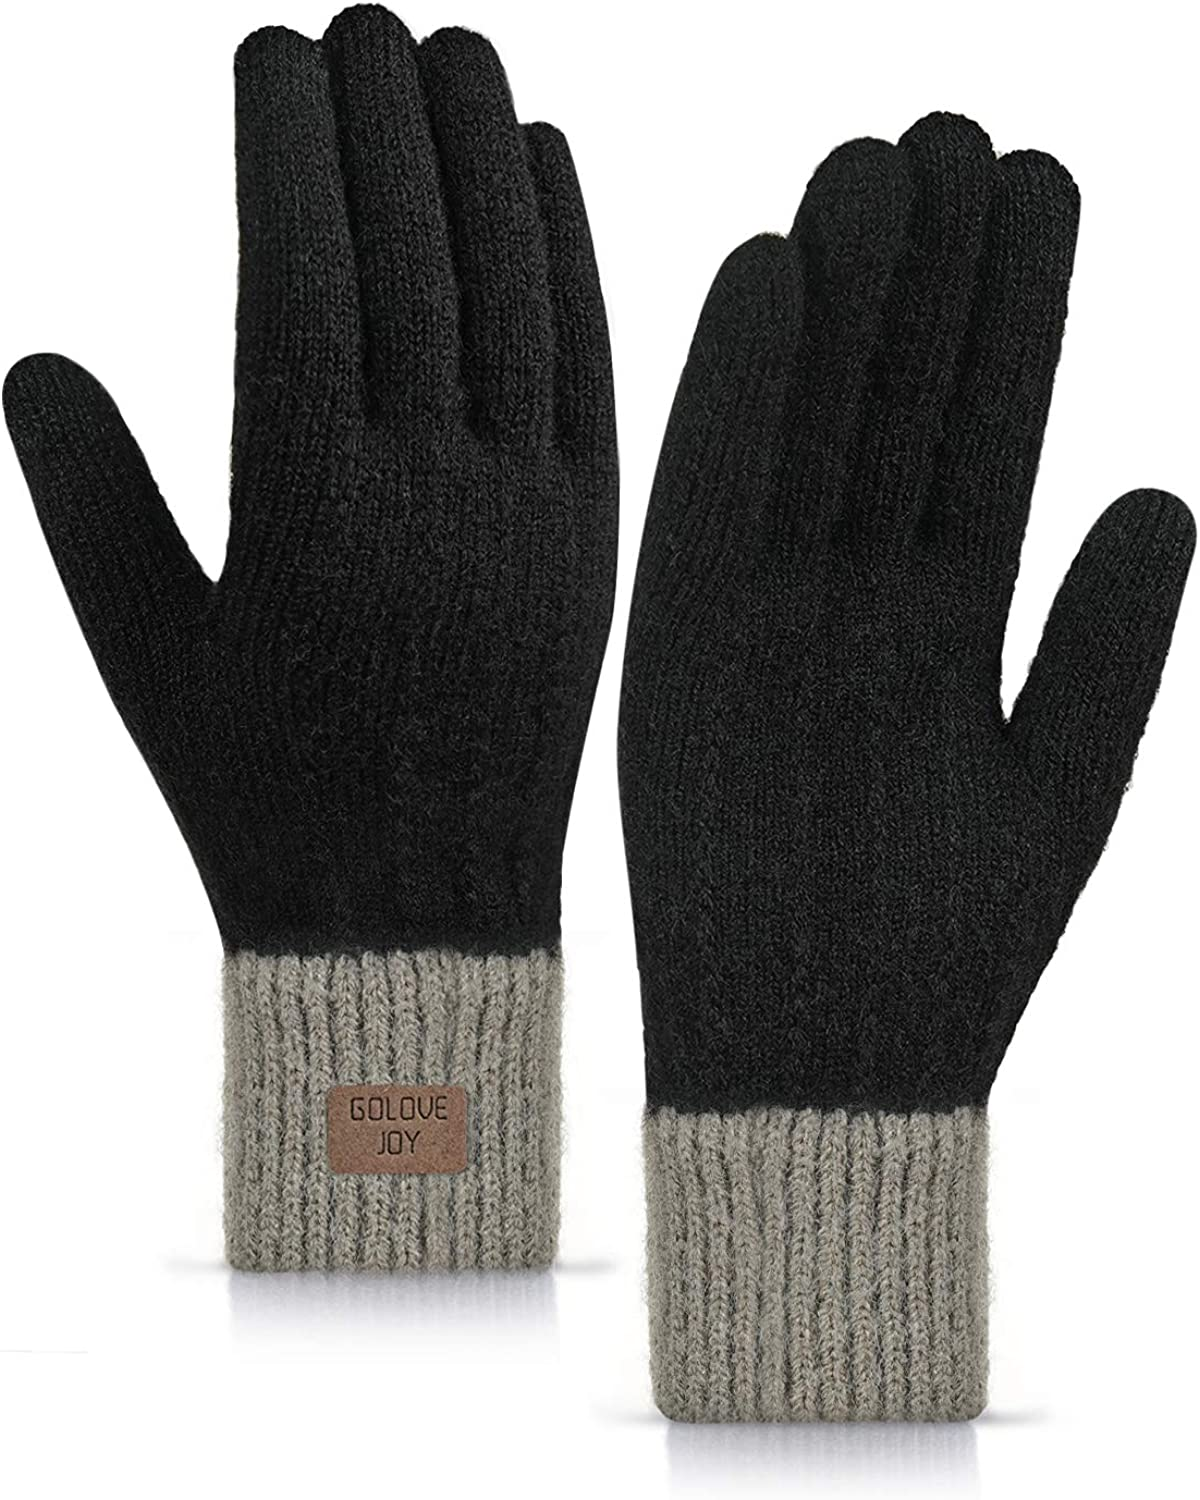 TRENDOUX Winter Gloves for Women - Touch Screen Glove Girl - Thick Cuff - Thermal Lining - Like-Alpaca Stretchy Material